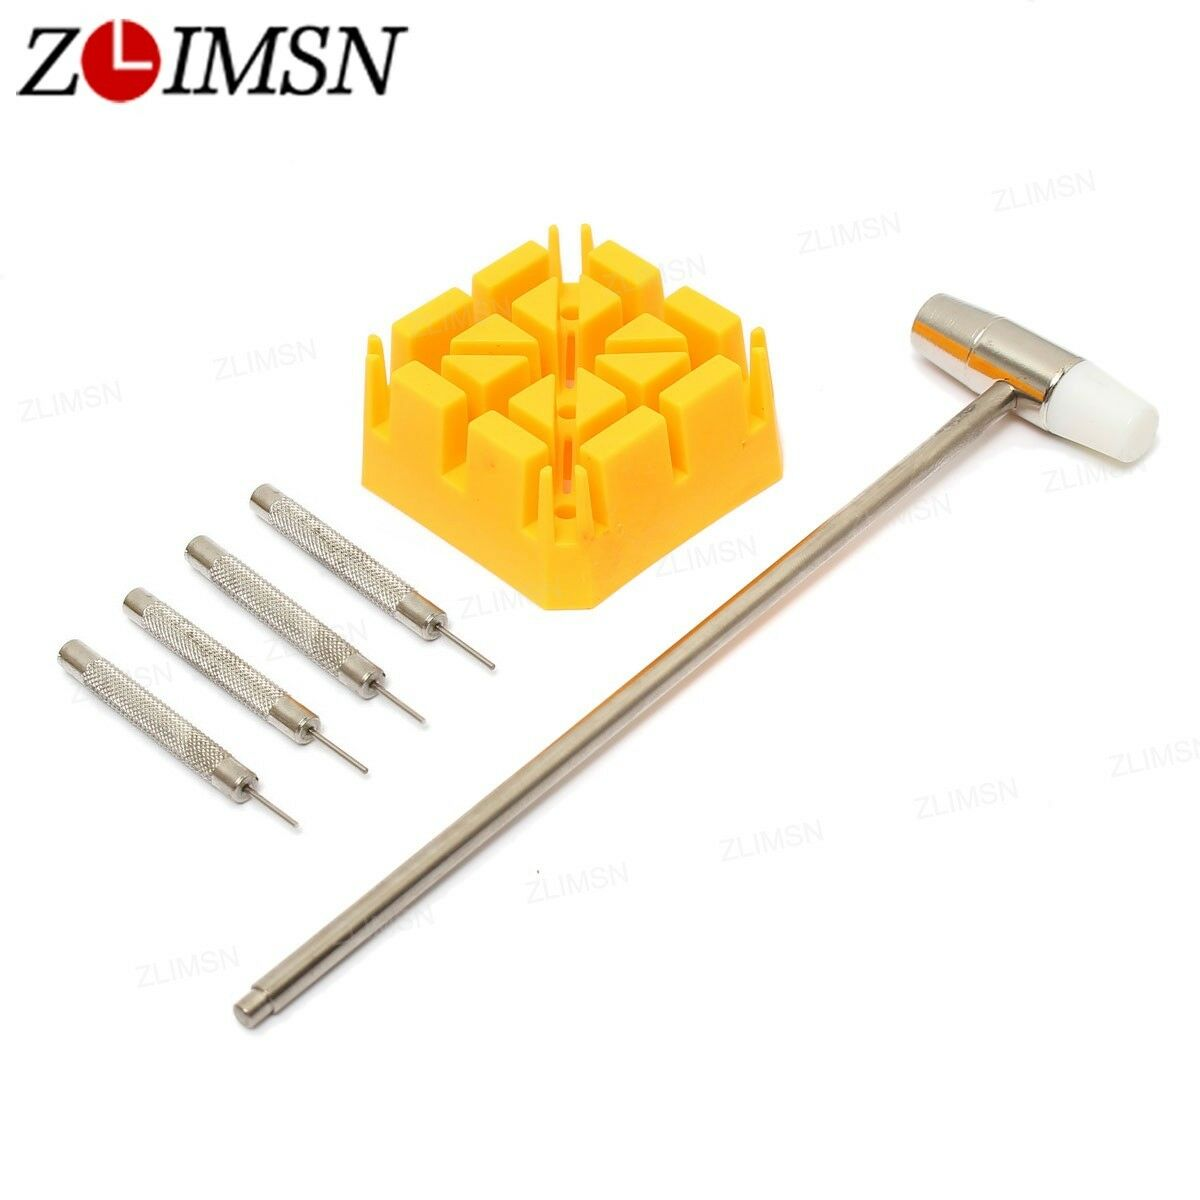 6 in 1 Set Watch Repair Band Link Remover Tool Kit Hammer Punch Pin Strap Holder